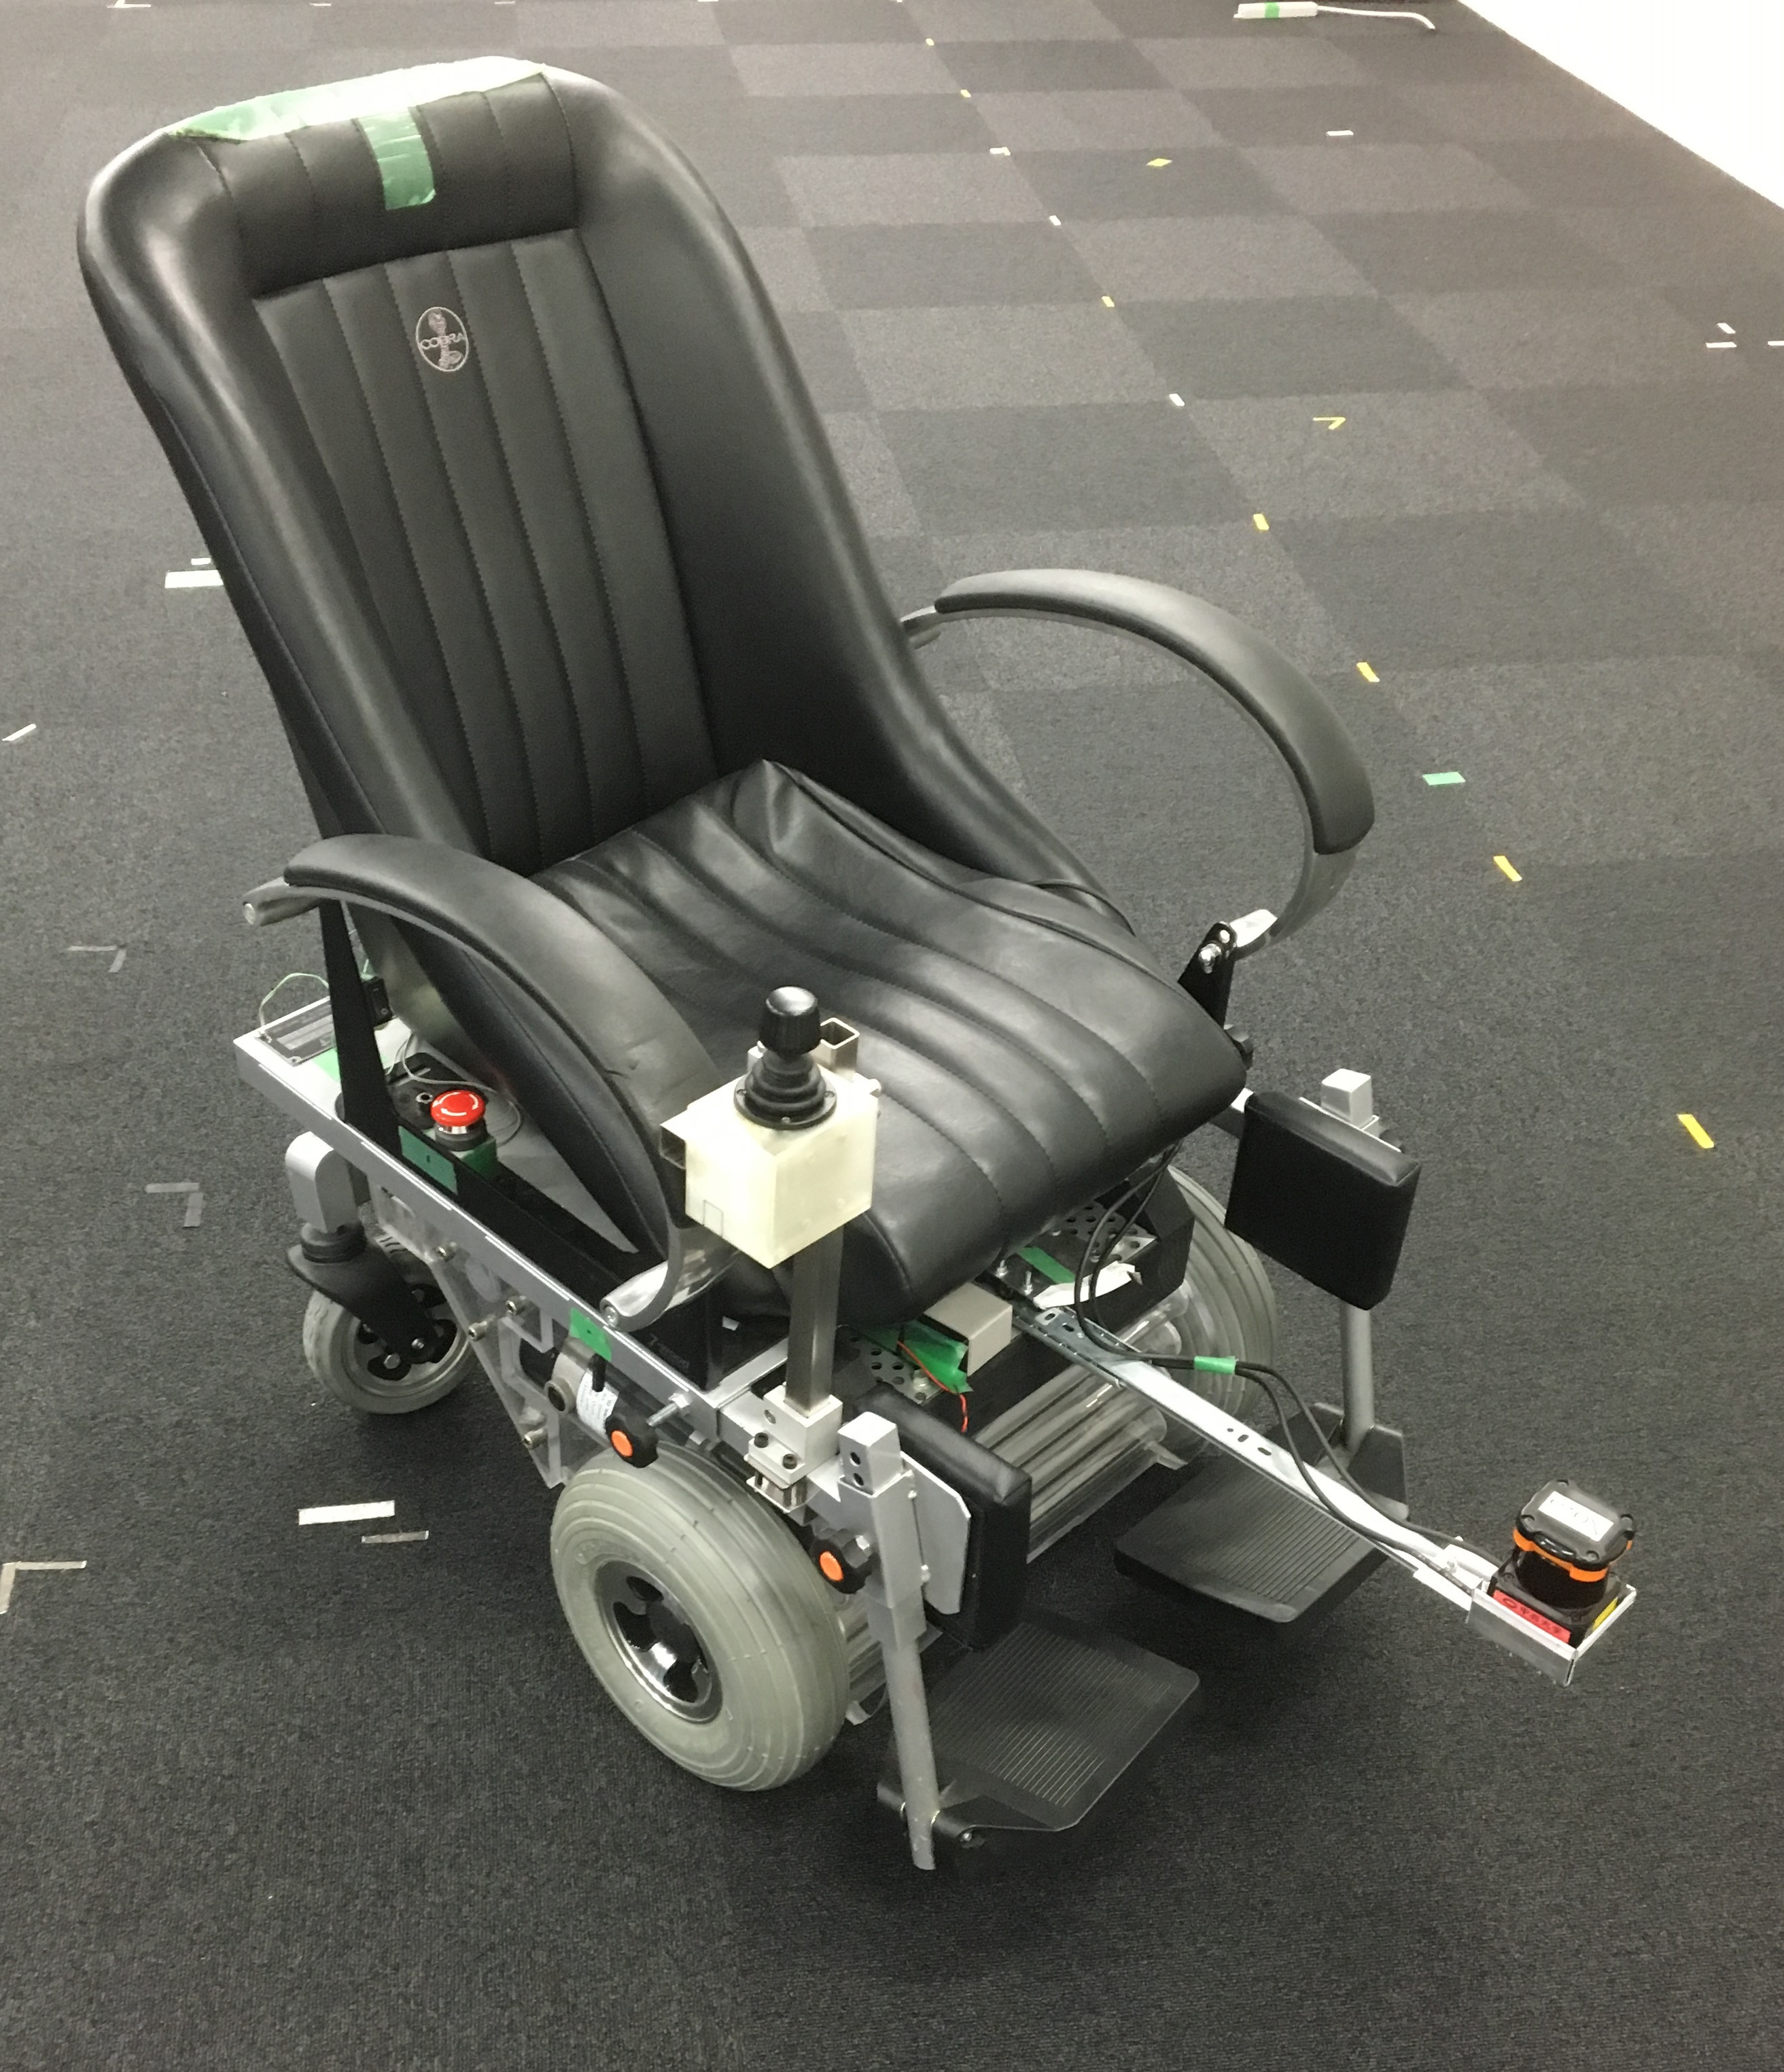 right,around, Personal Mobility Tool as a smart electric wheelchair